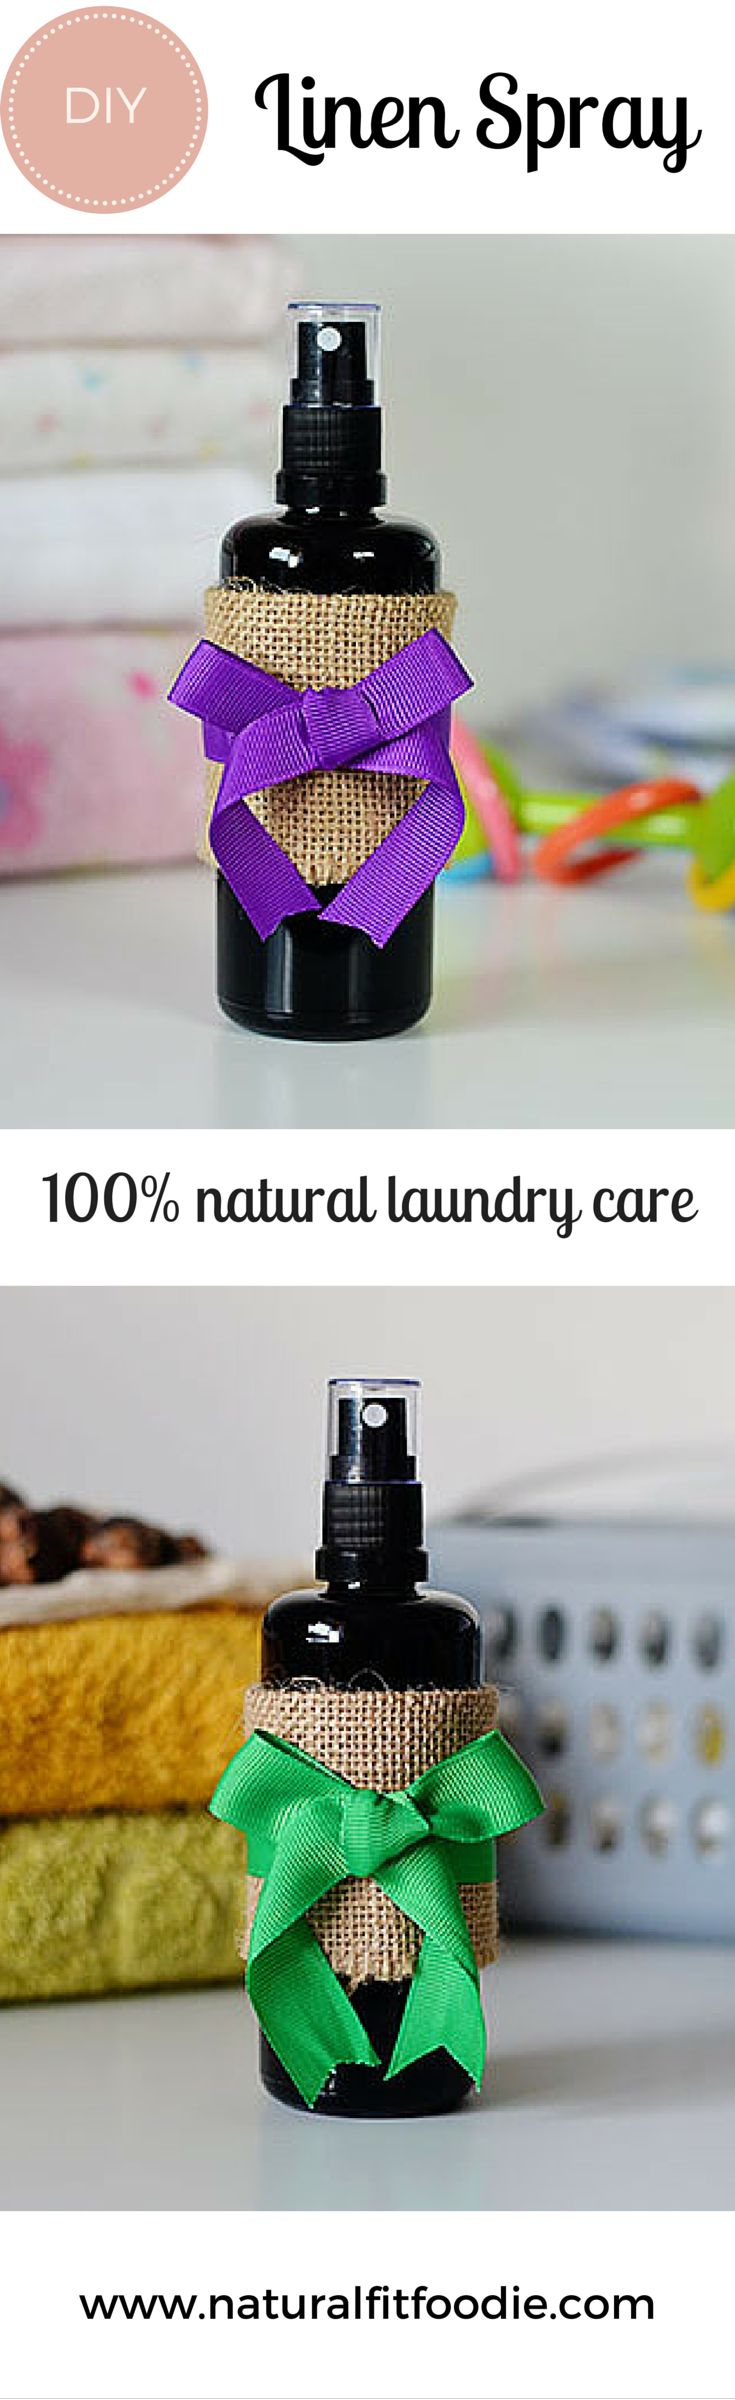 DIY Linen Spray - Ditch those toxic fabric softeners and dryer sheets! This DIY Linen Spray is a safe natural alternative and will leave your clothes with a wonderful naturally fresh scent. A great gift idea!